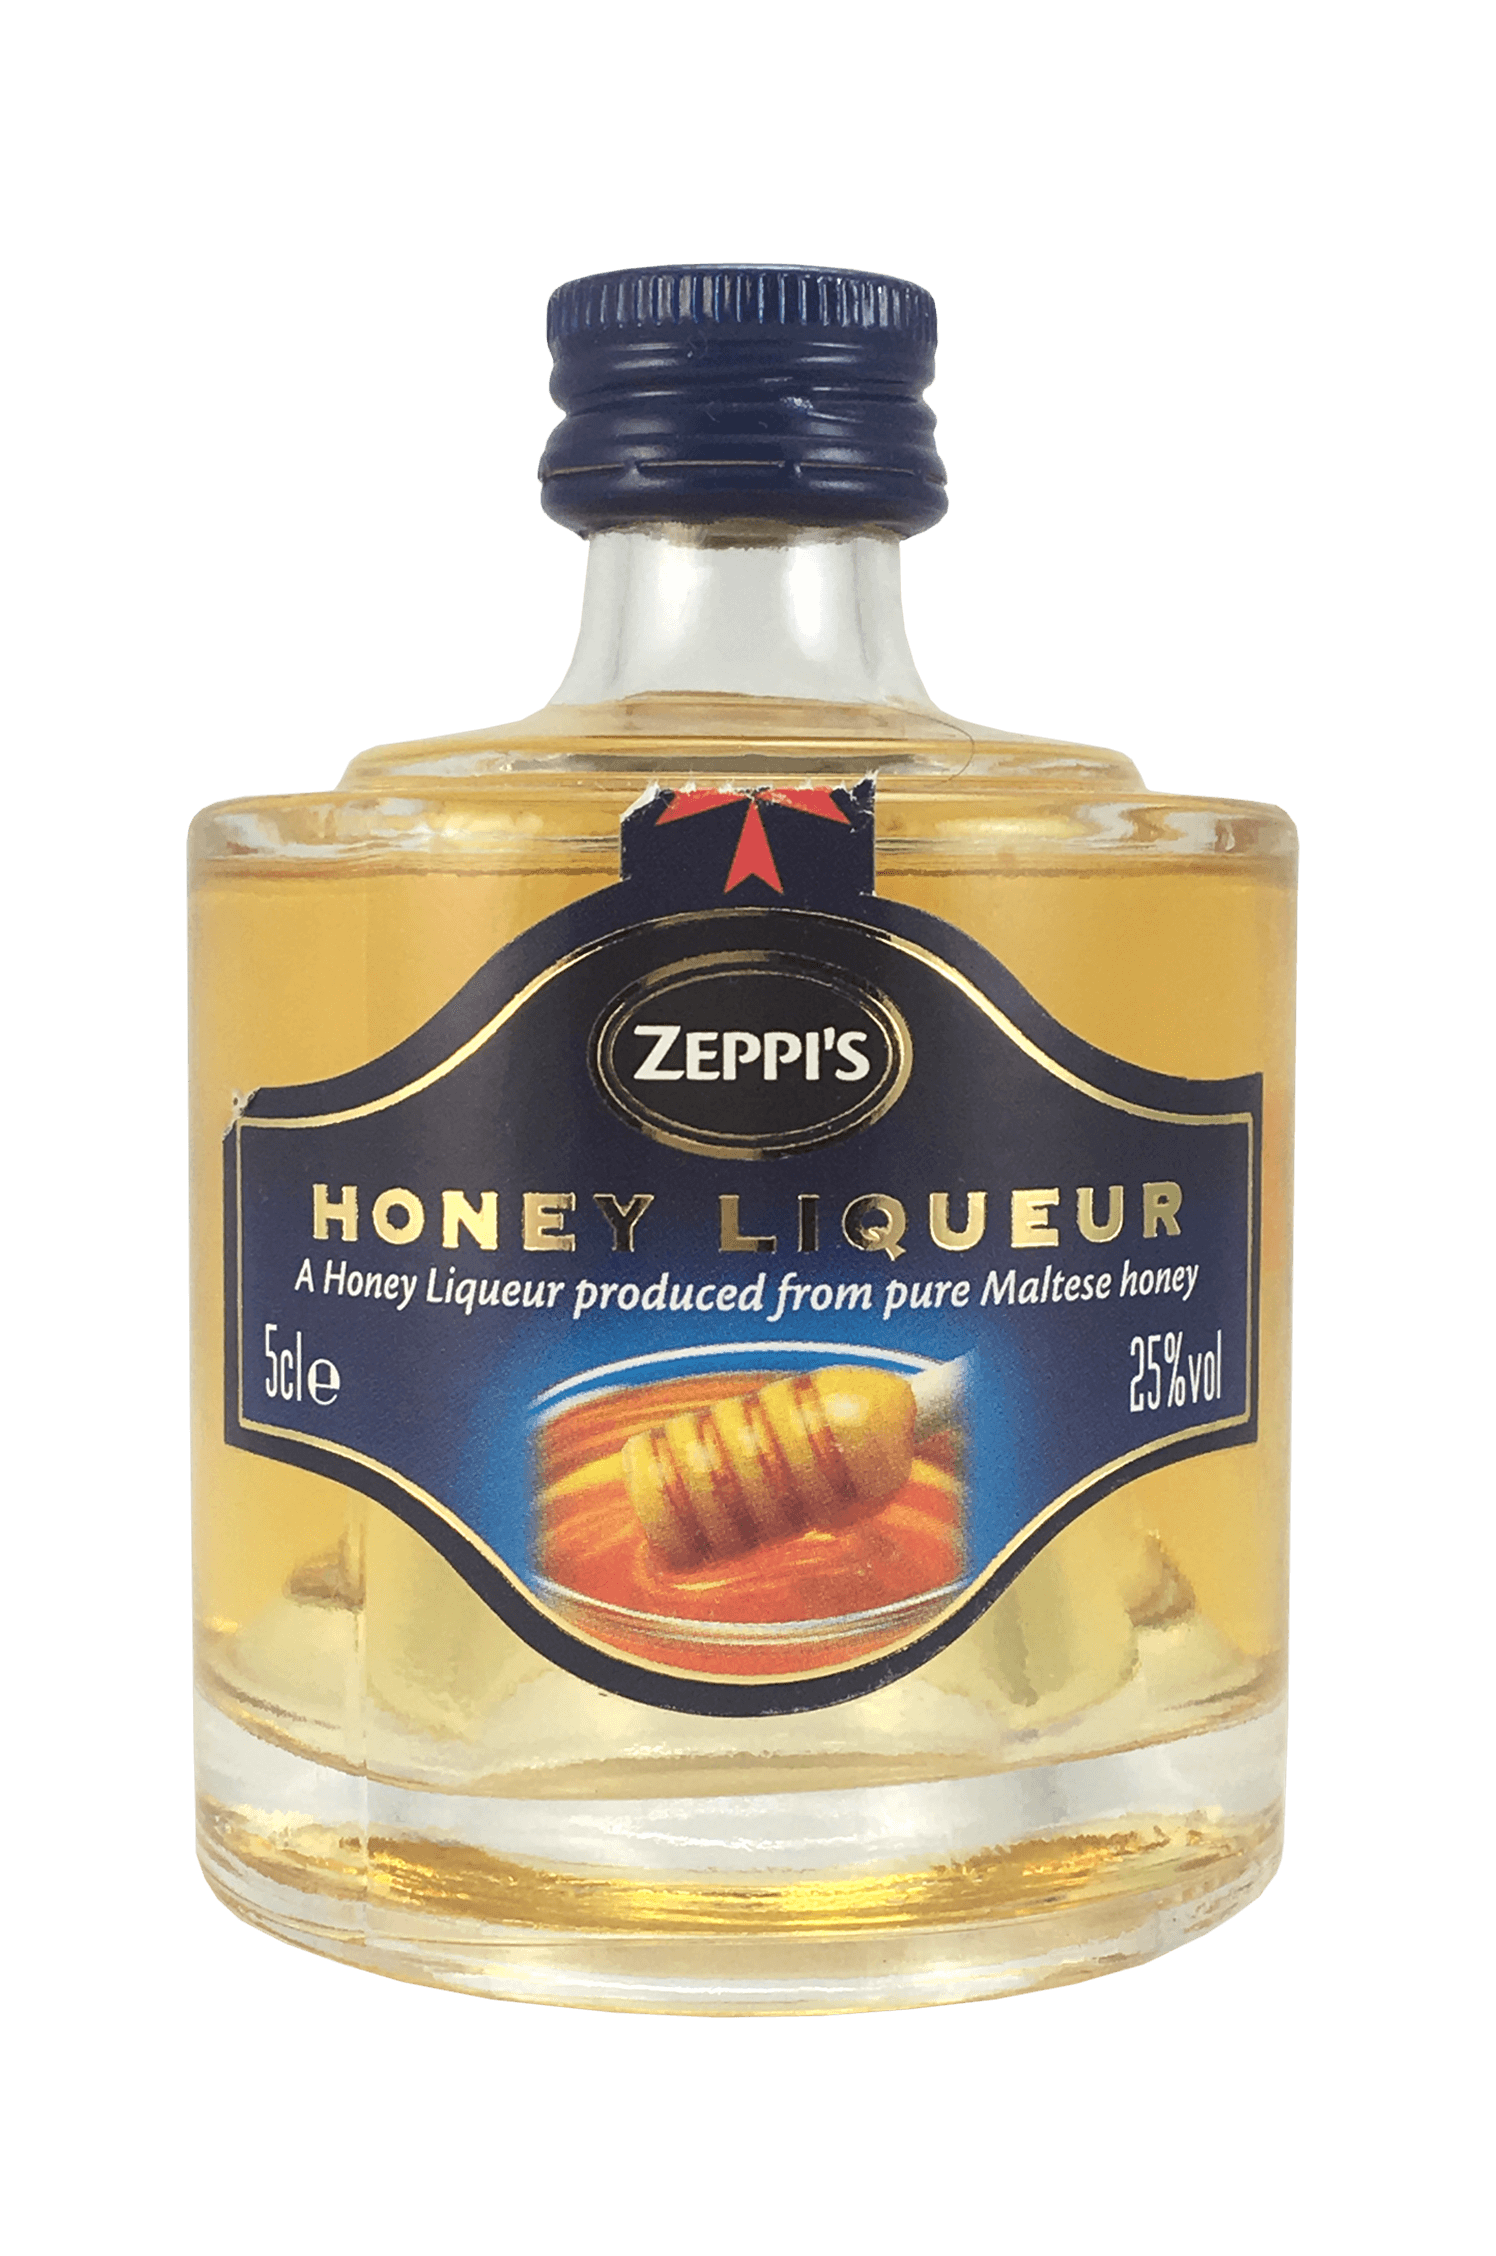 Zeppi's Honey Liqueur